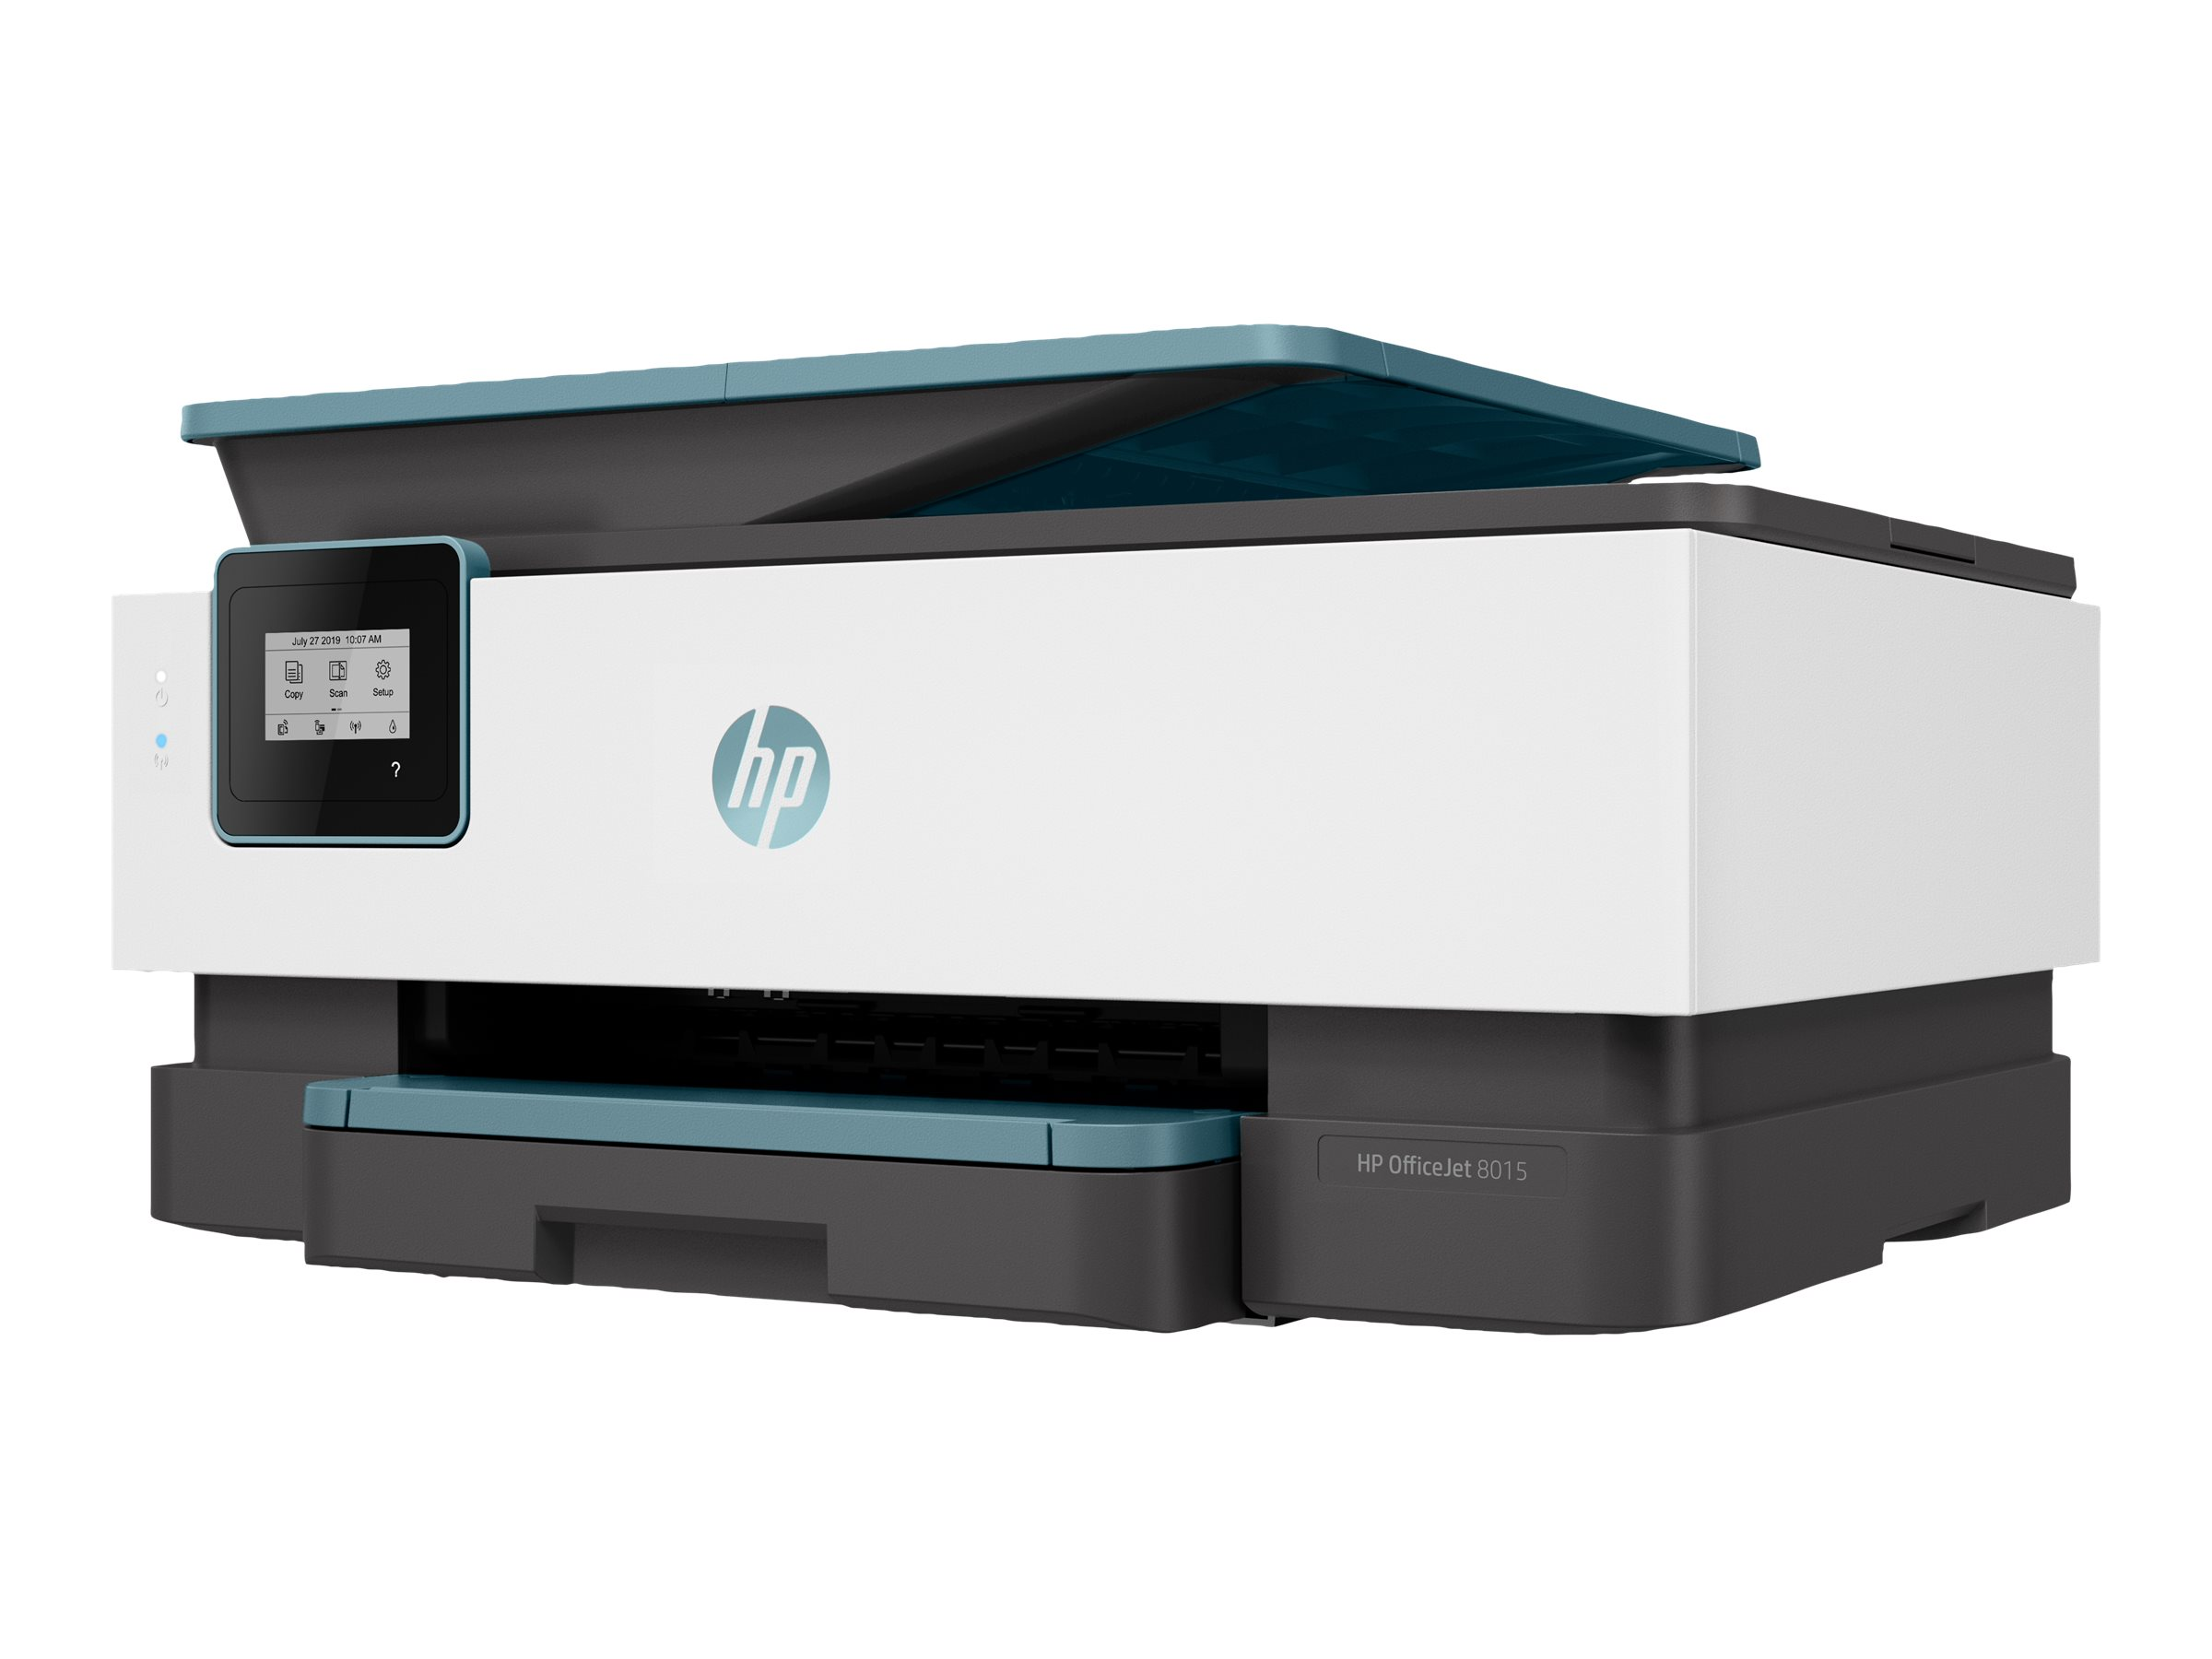 HP Officejet 8015 All-in-One - imprimante multifonctions jet d'encre couleur A4 - Wifi - recto-verso